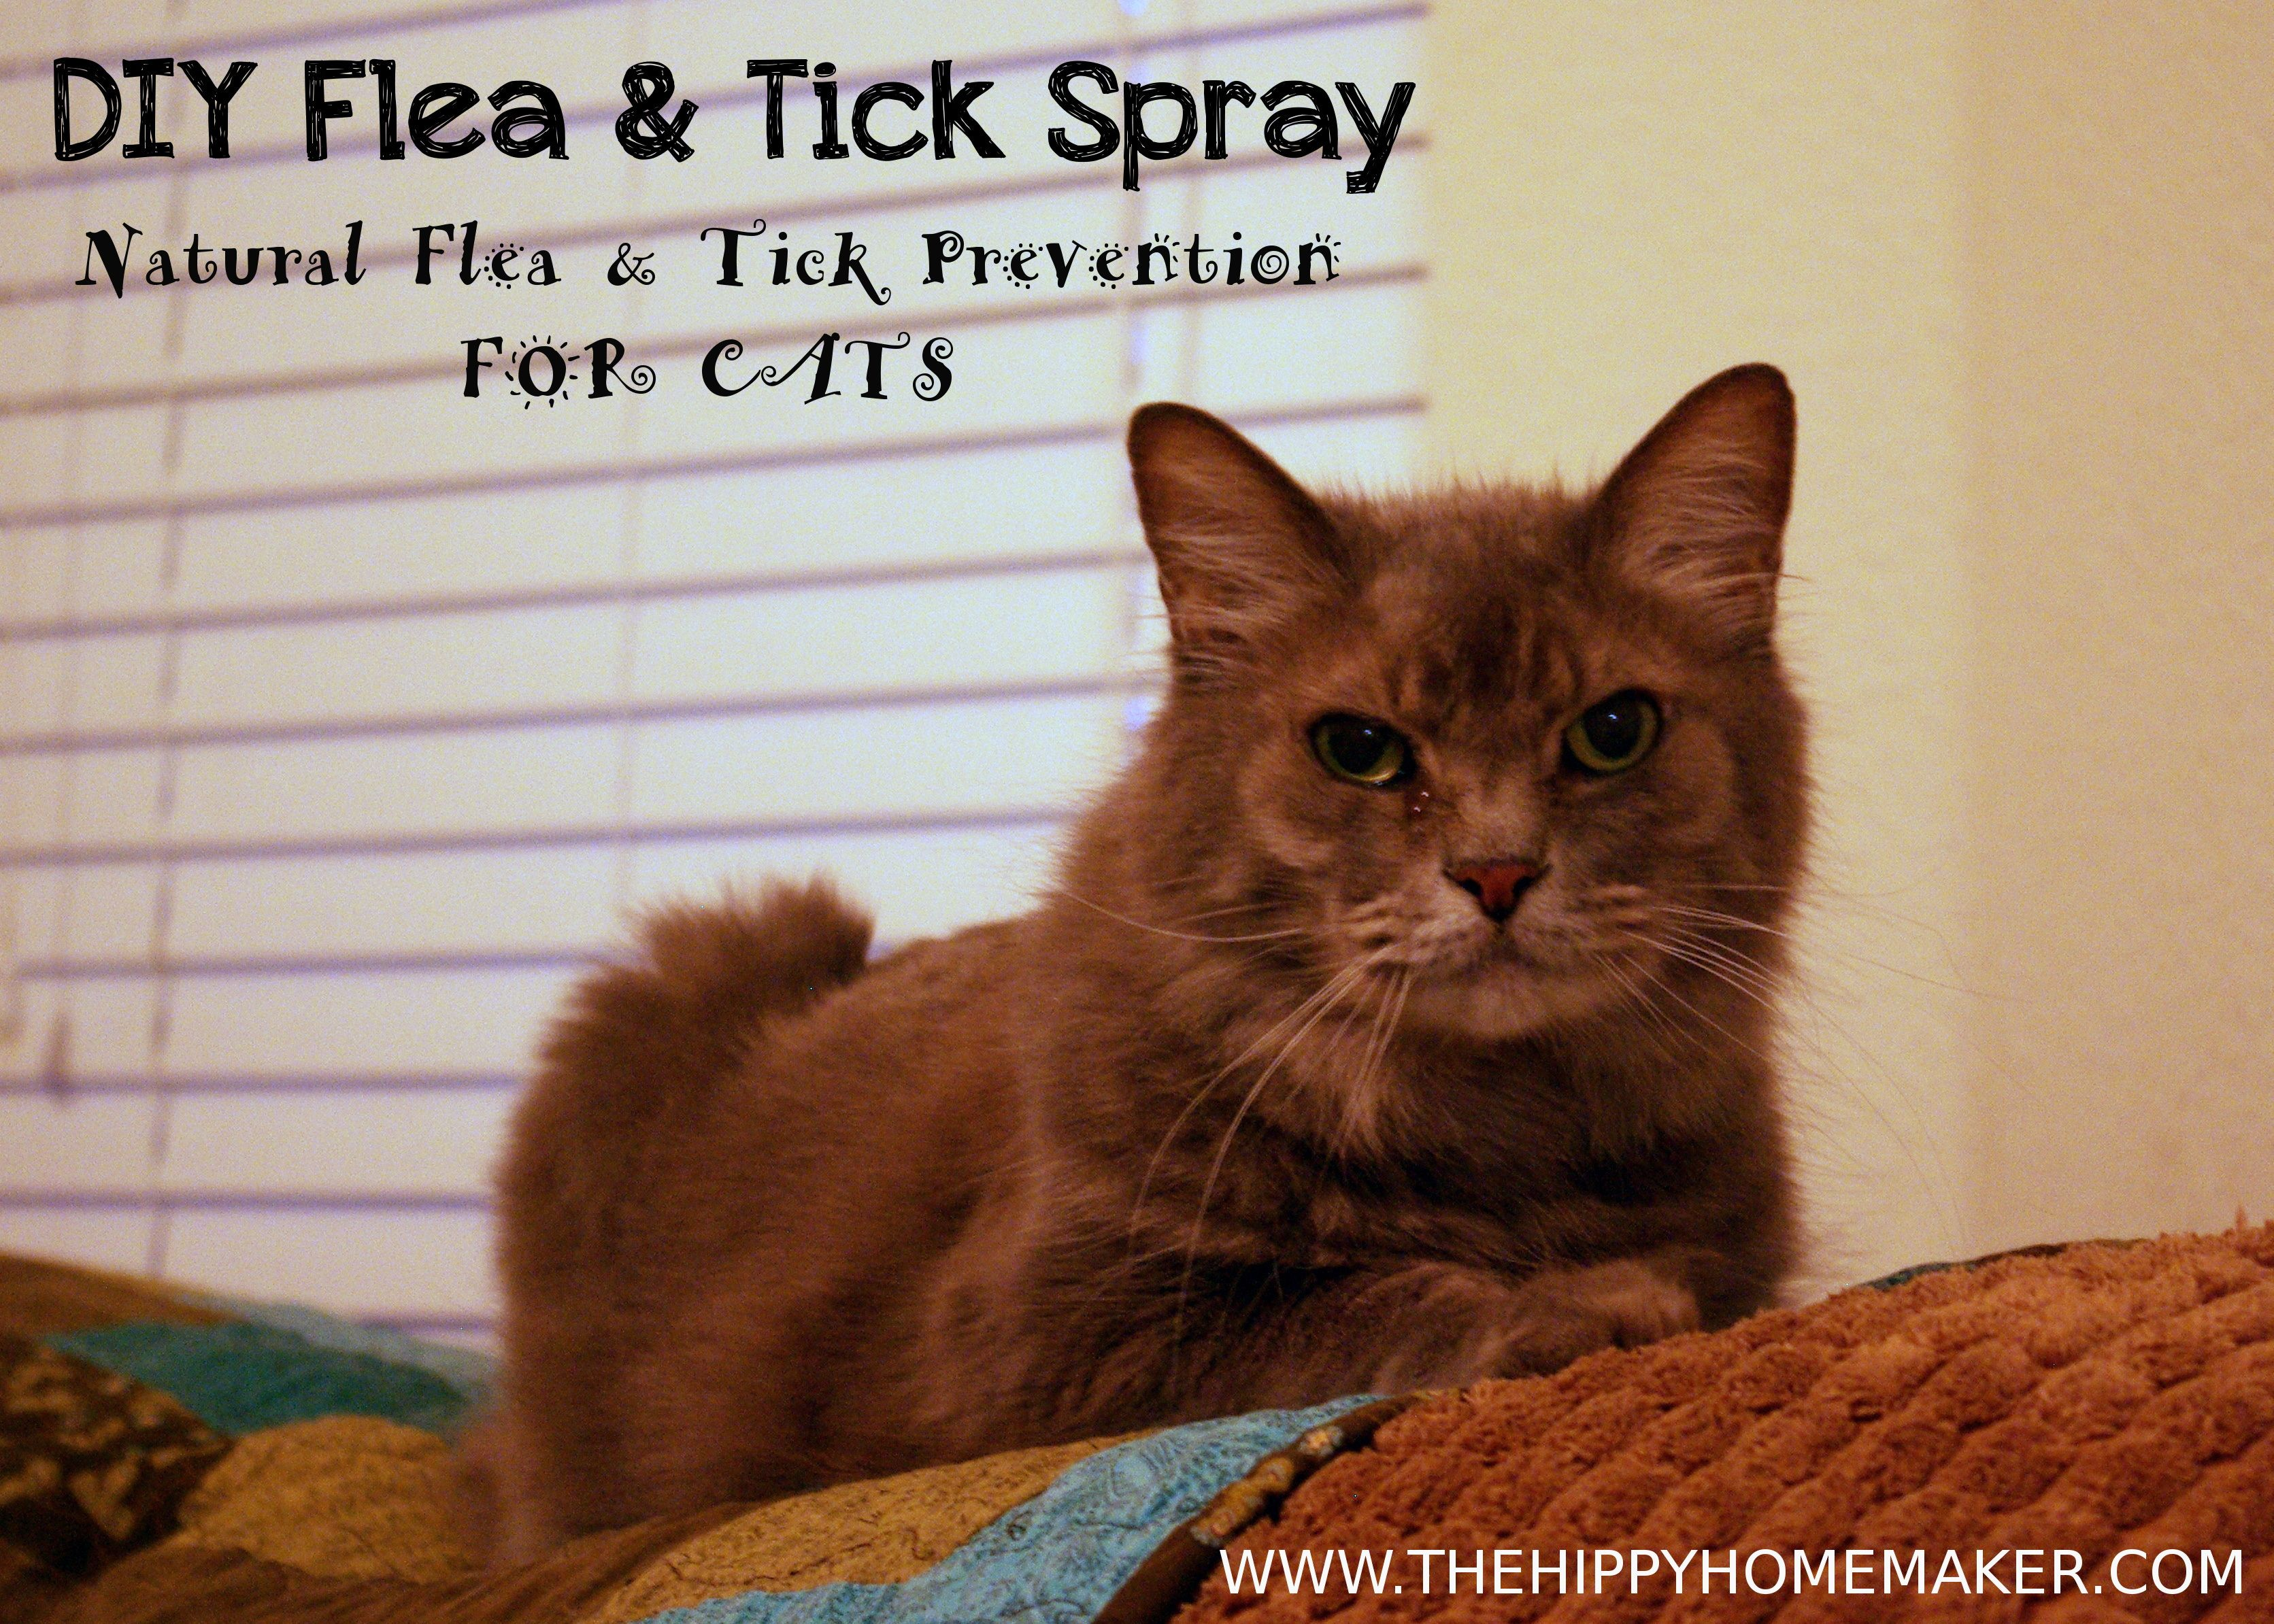 DIY Flea & Tick Spray for Cats - thehippyhomemaker.com